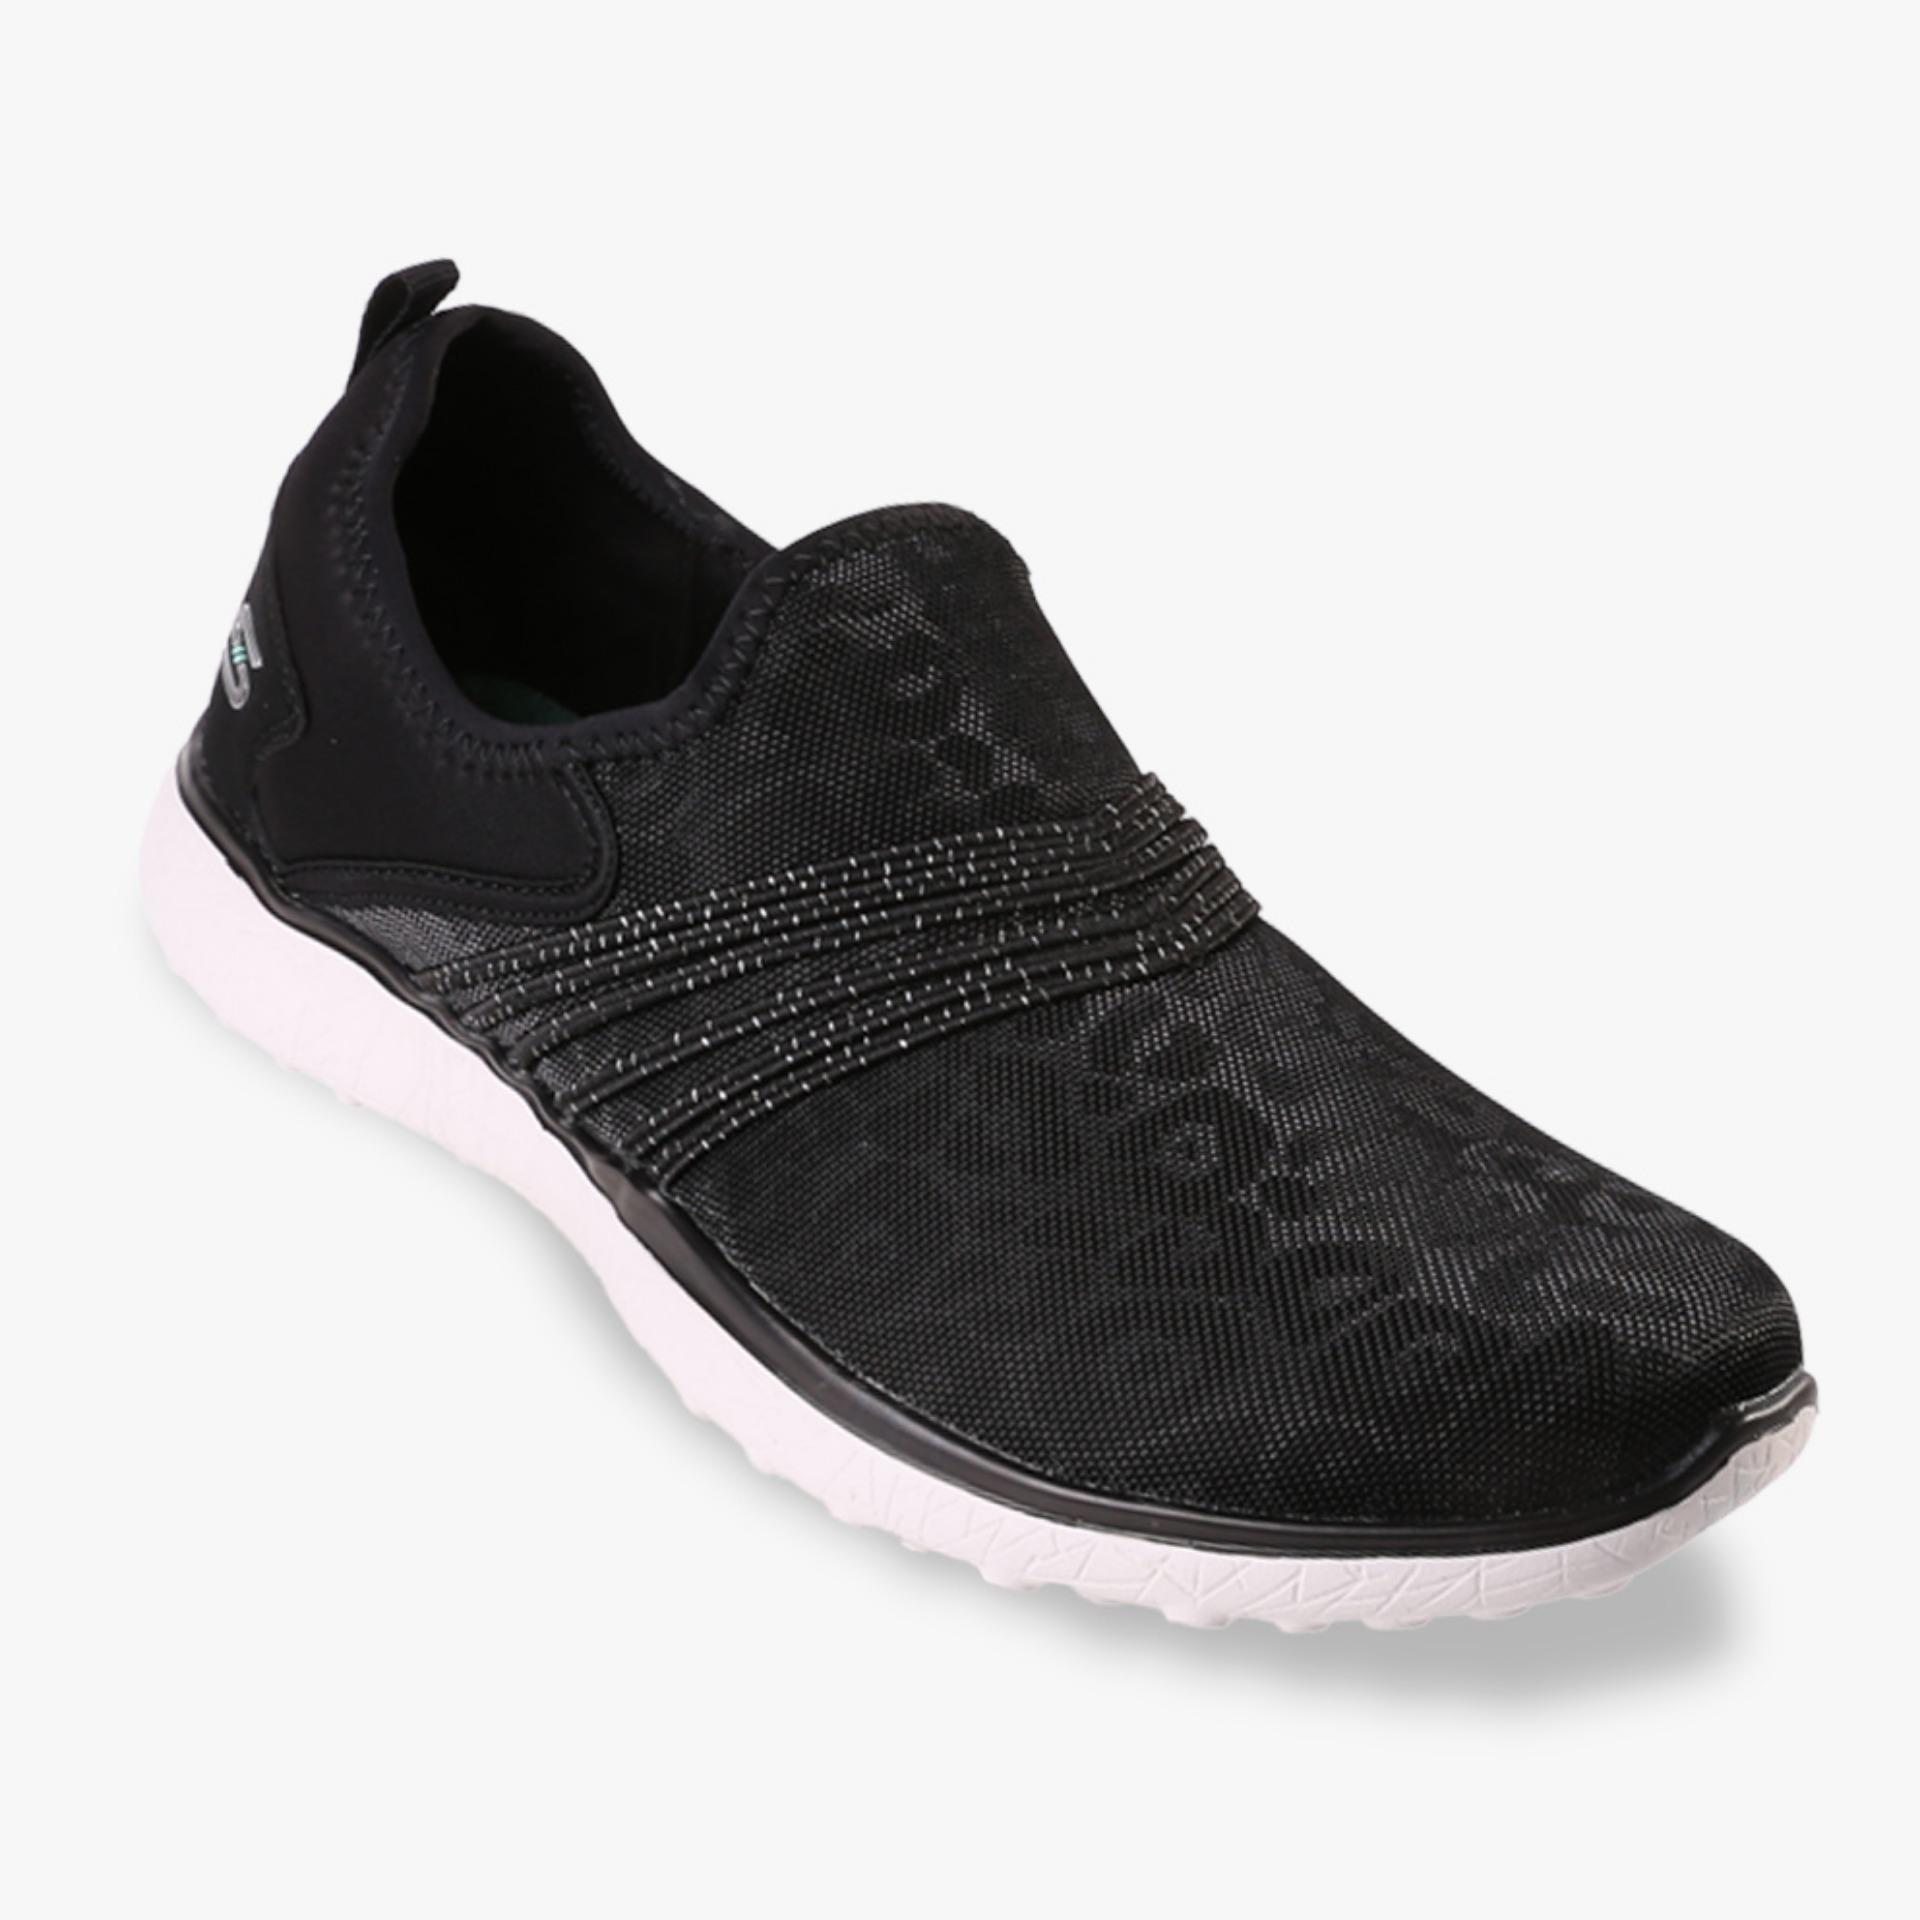 Skechers Microburst Under Wraps Women S Sneakers Hitam Murah